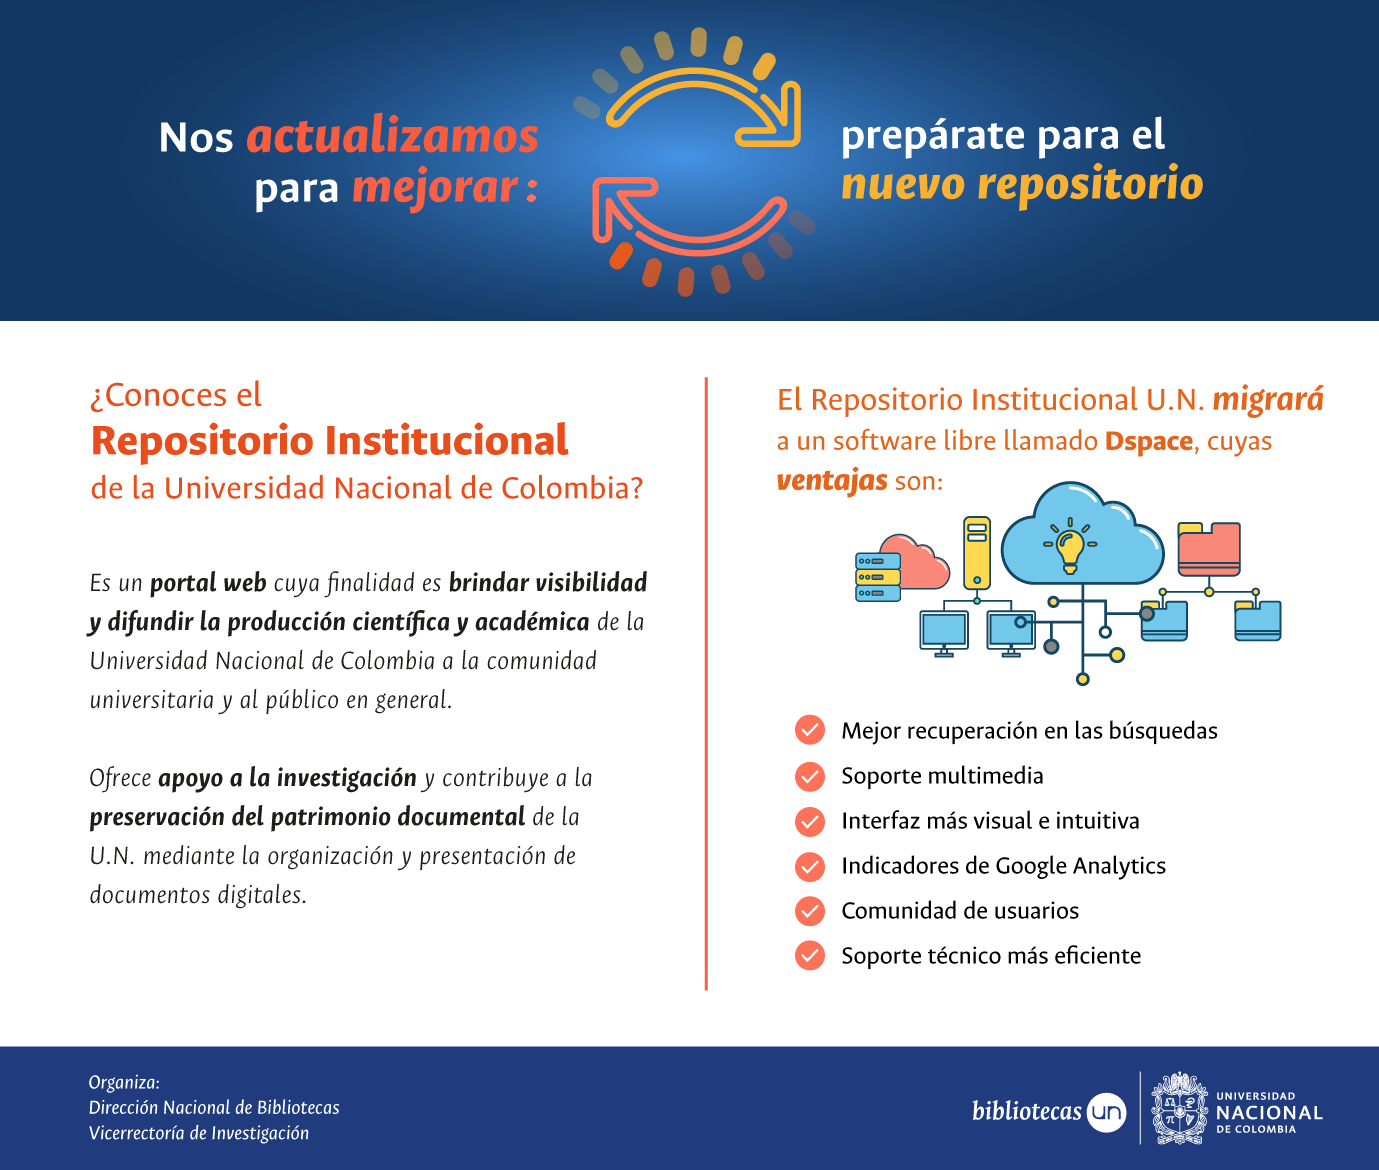 ¿Conoces el Repositorio Institucional de la               Universidad Nacional de Colombia?